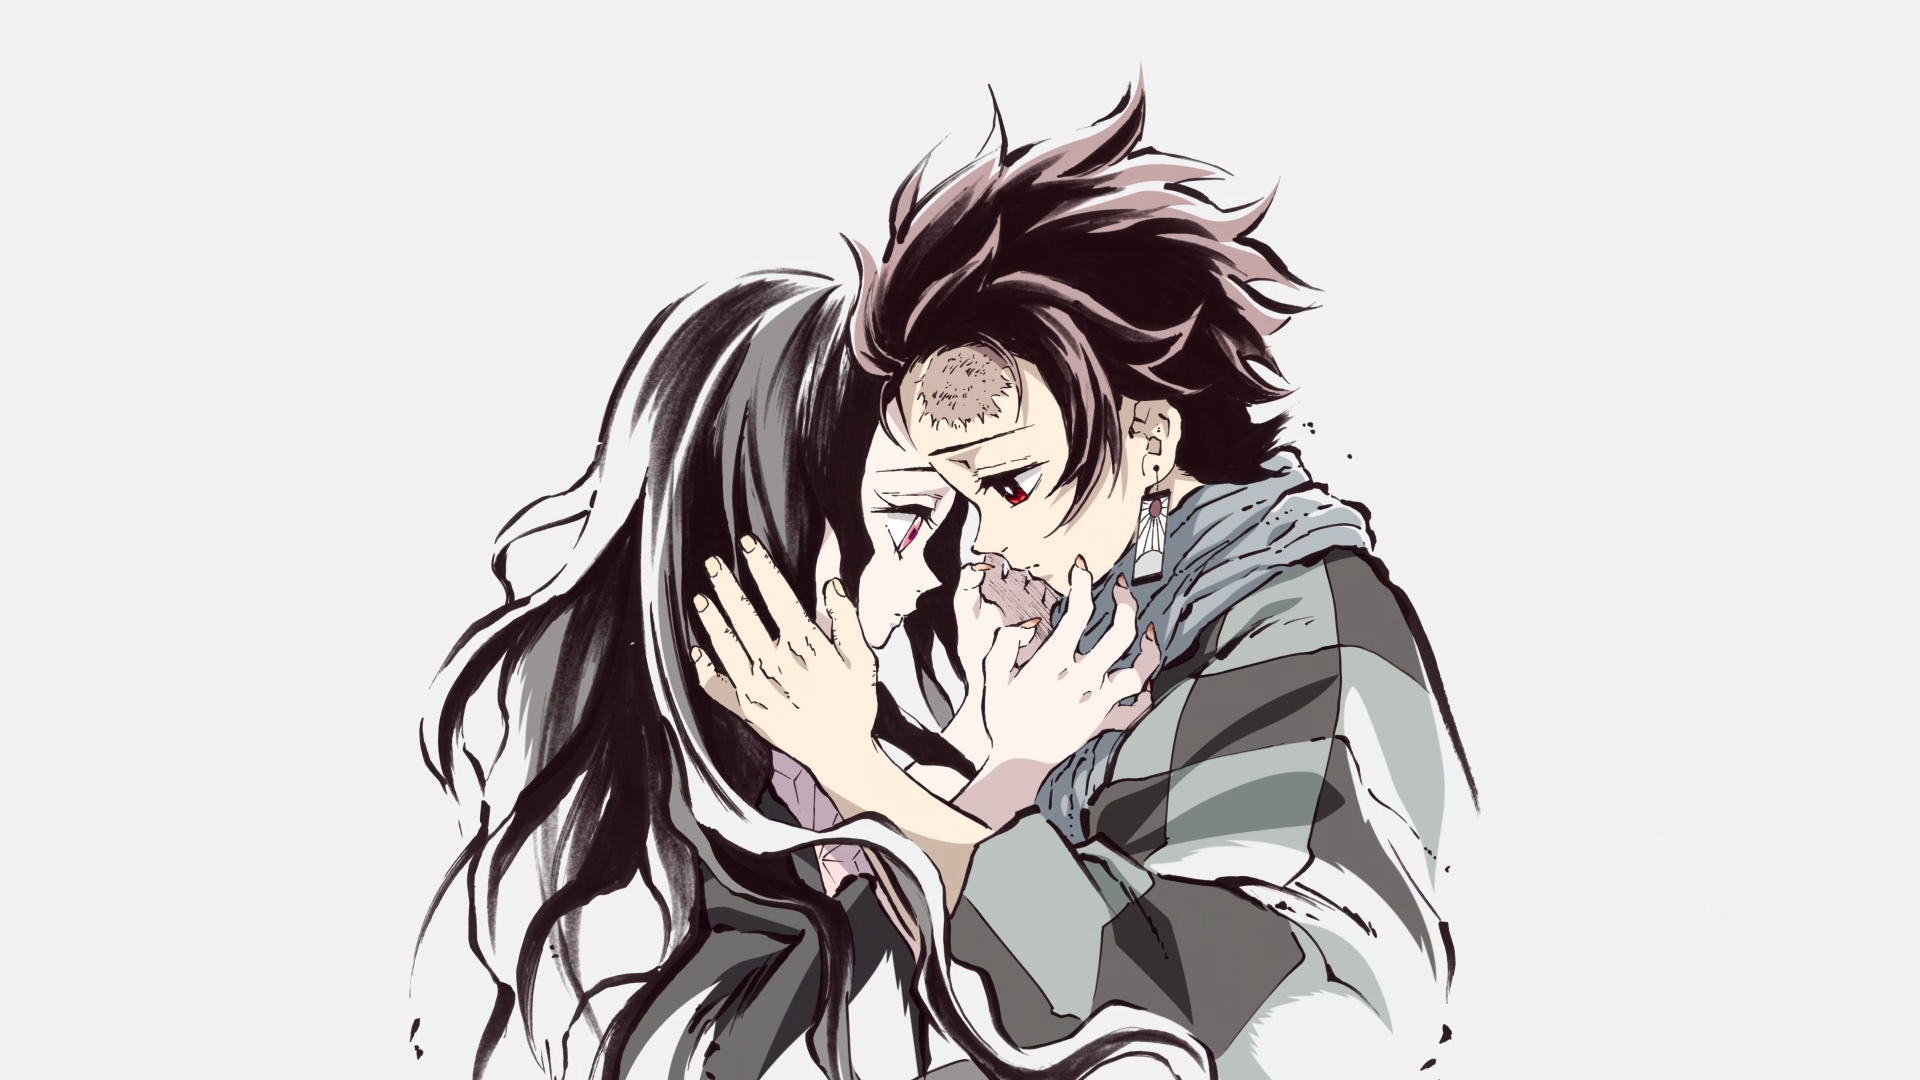 Pin by Sol Seraphim on Demon Slayer Kimetsu no Yaiba